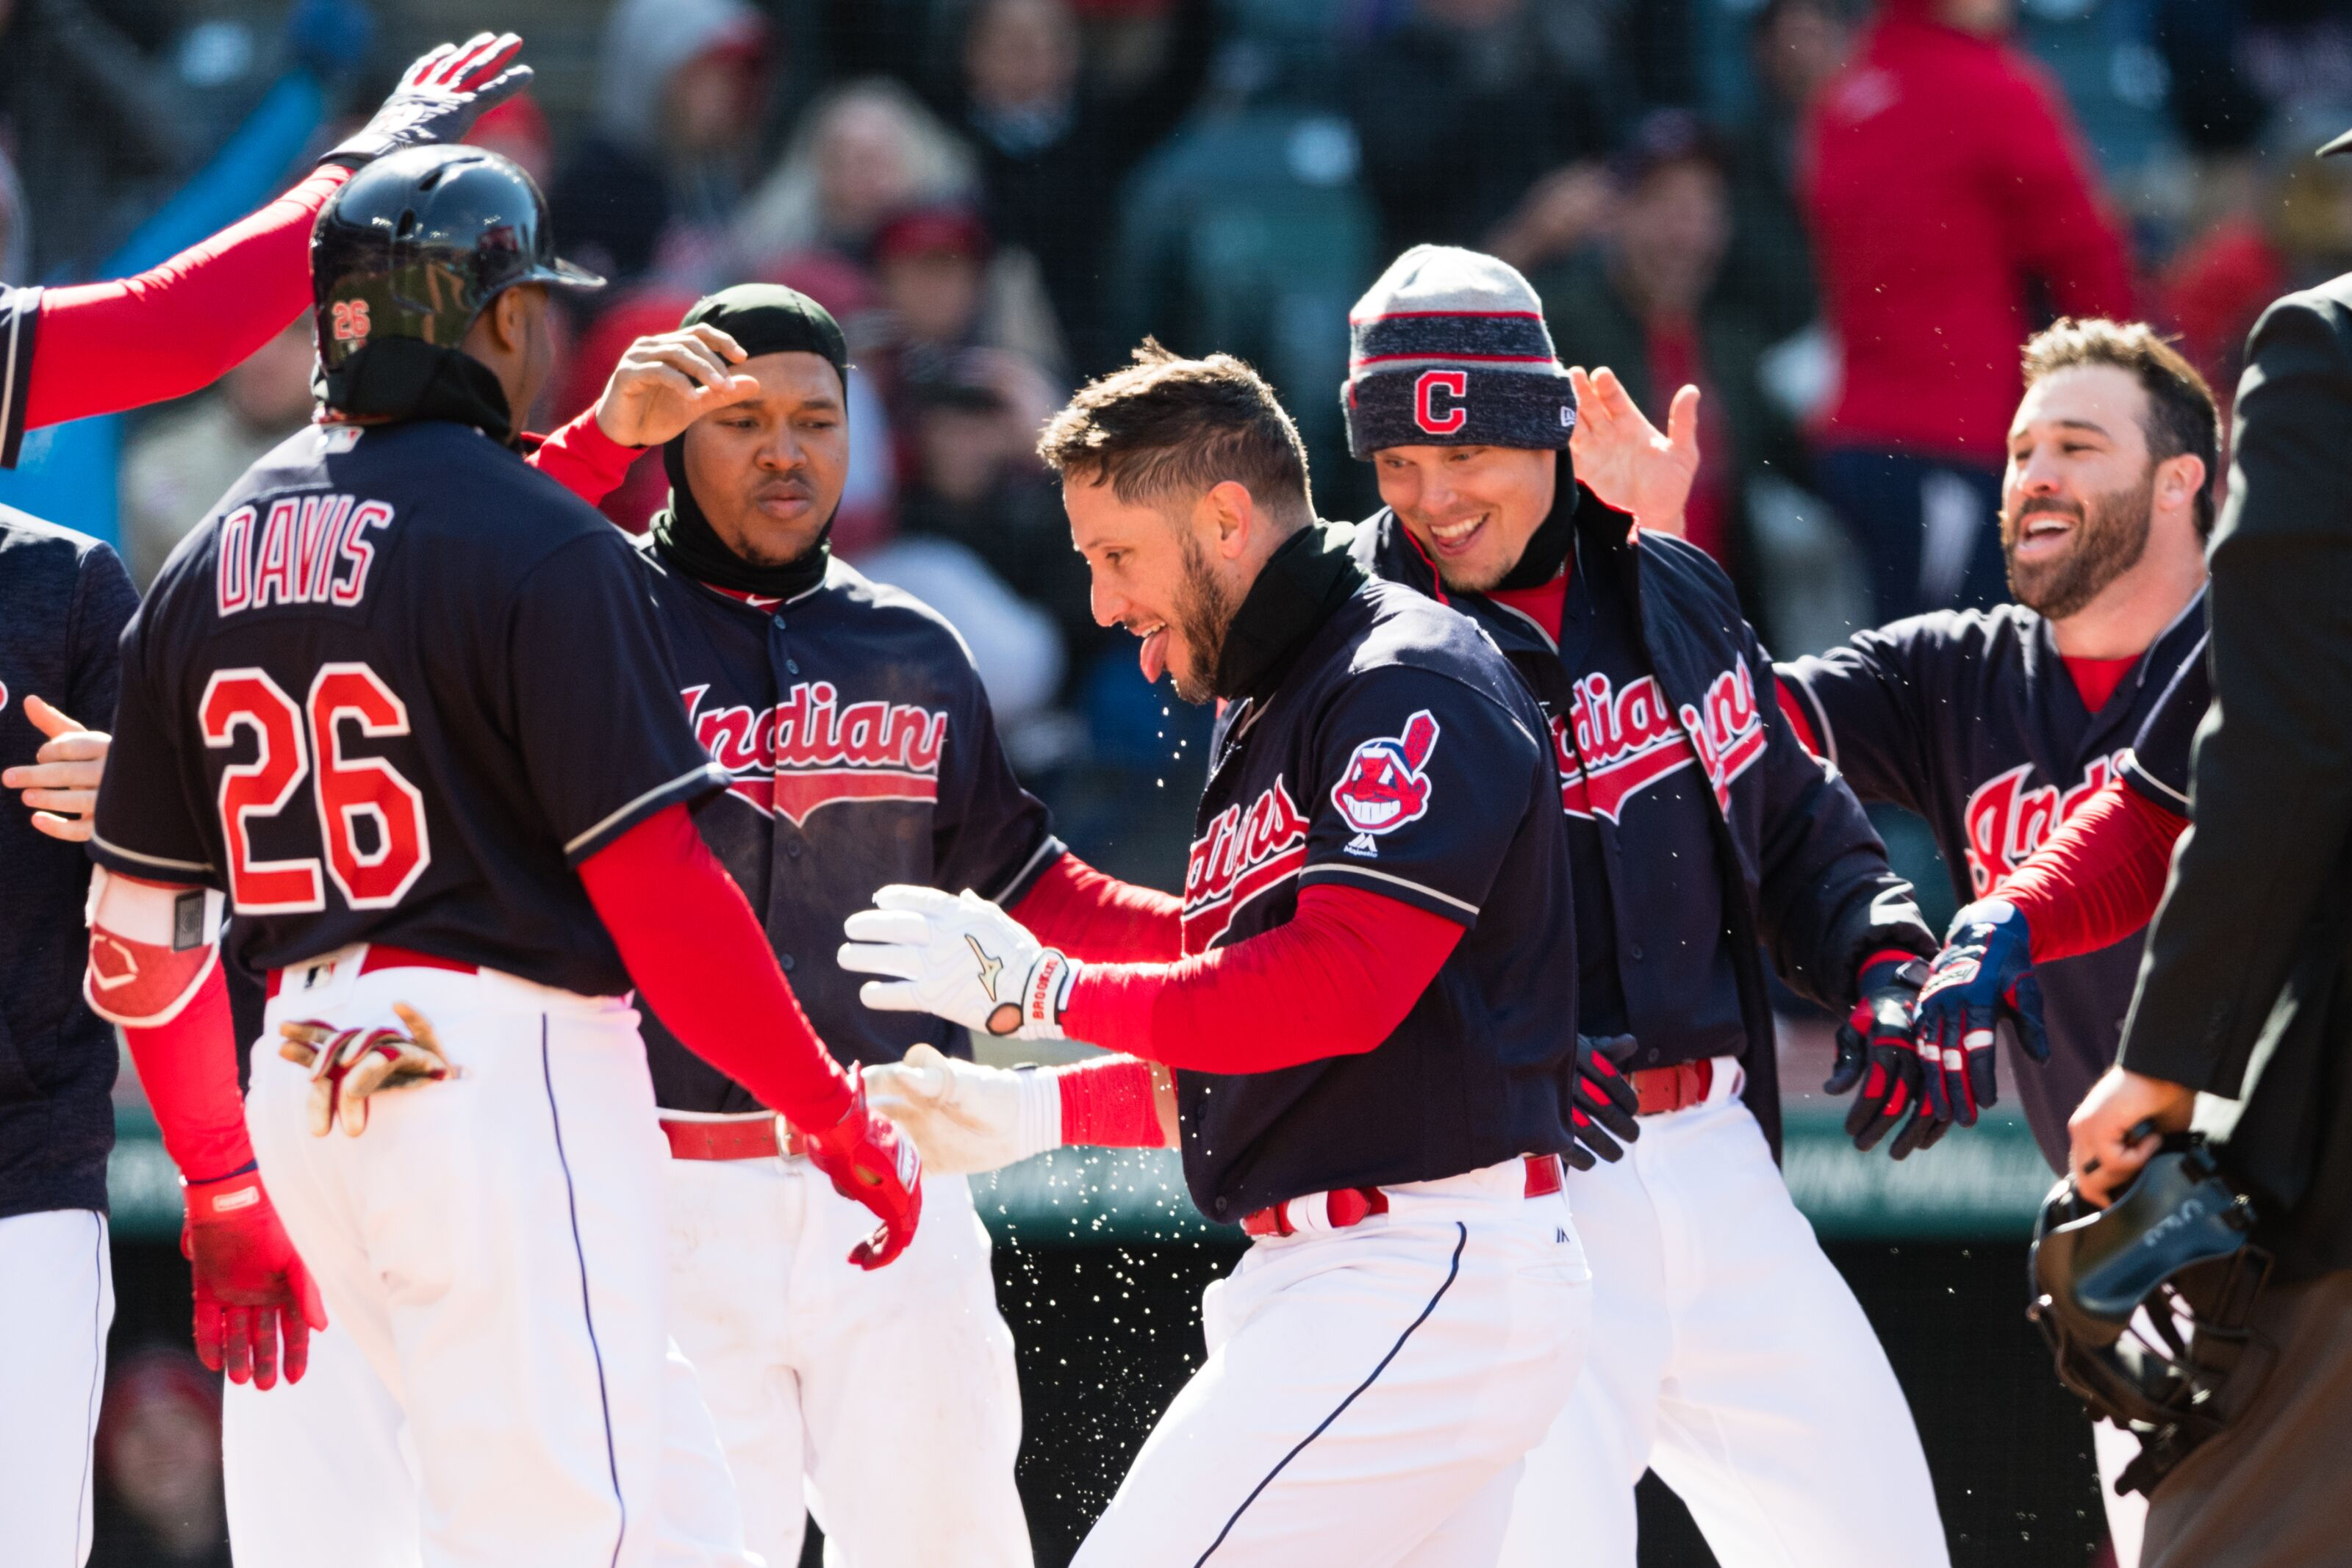 Cleveland Indians: Cleveland Indians: 3 Takeaways From An Interesting 3-1 Win